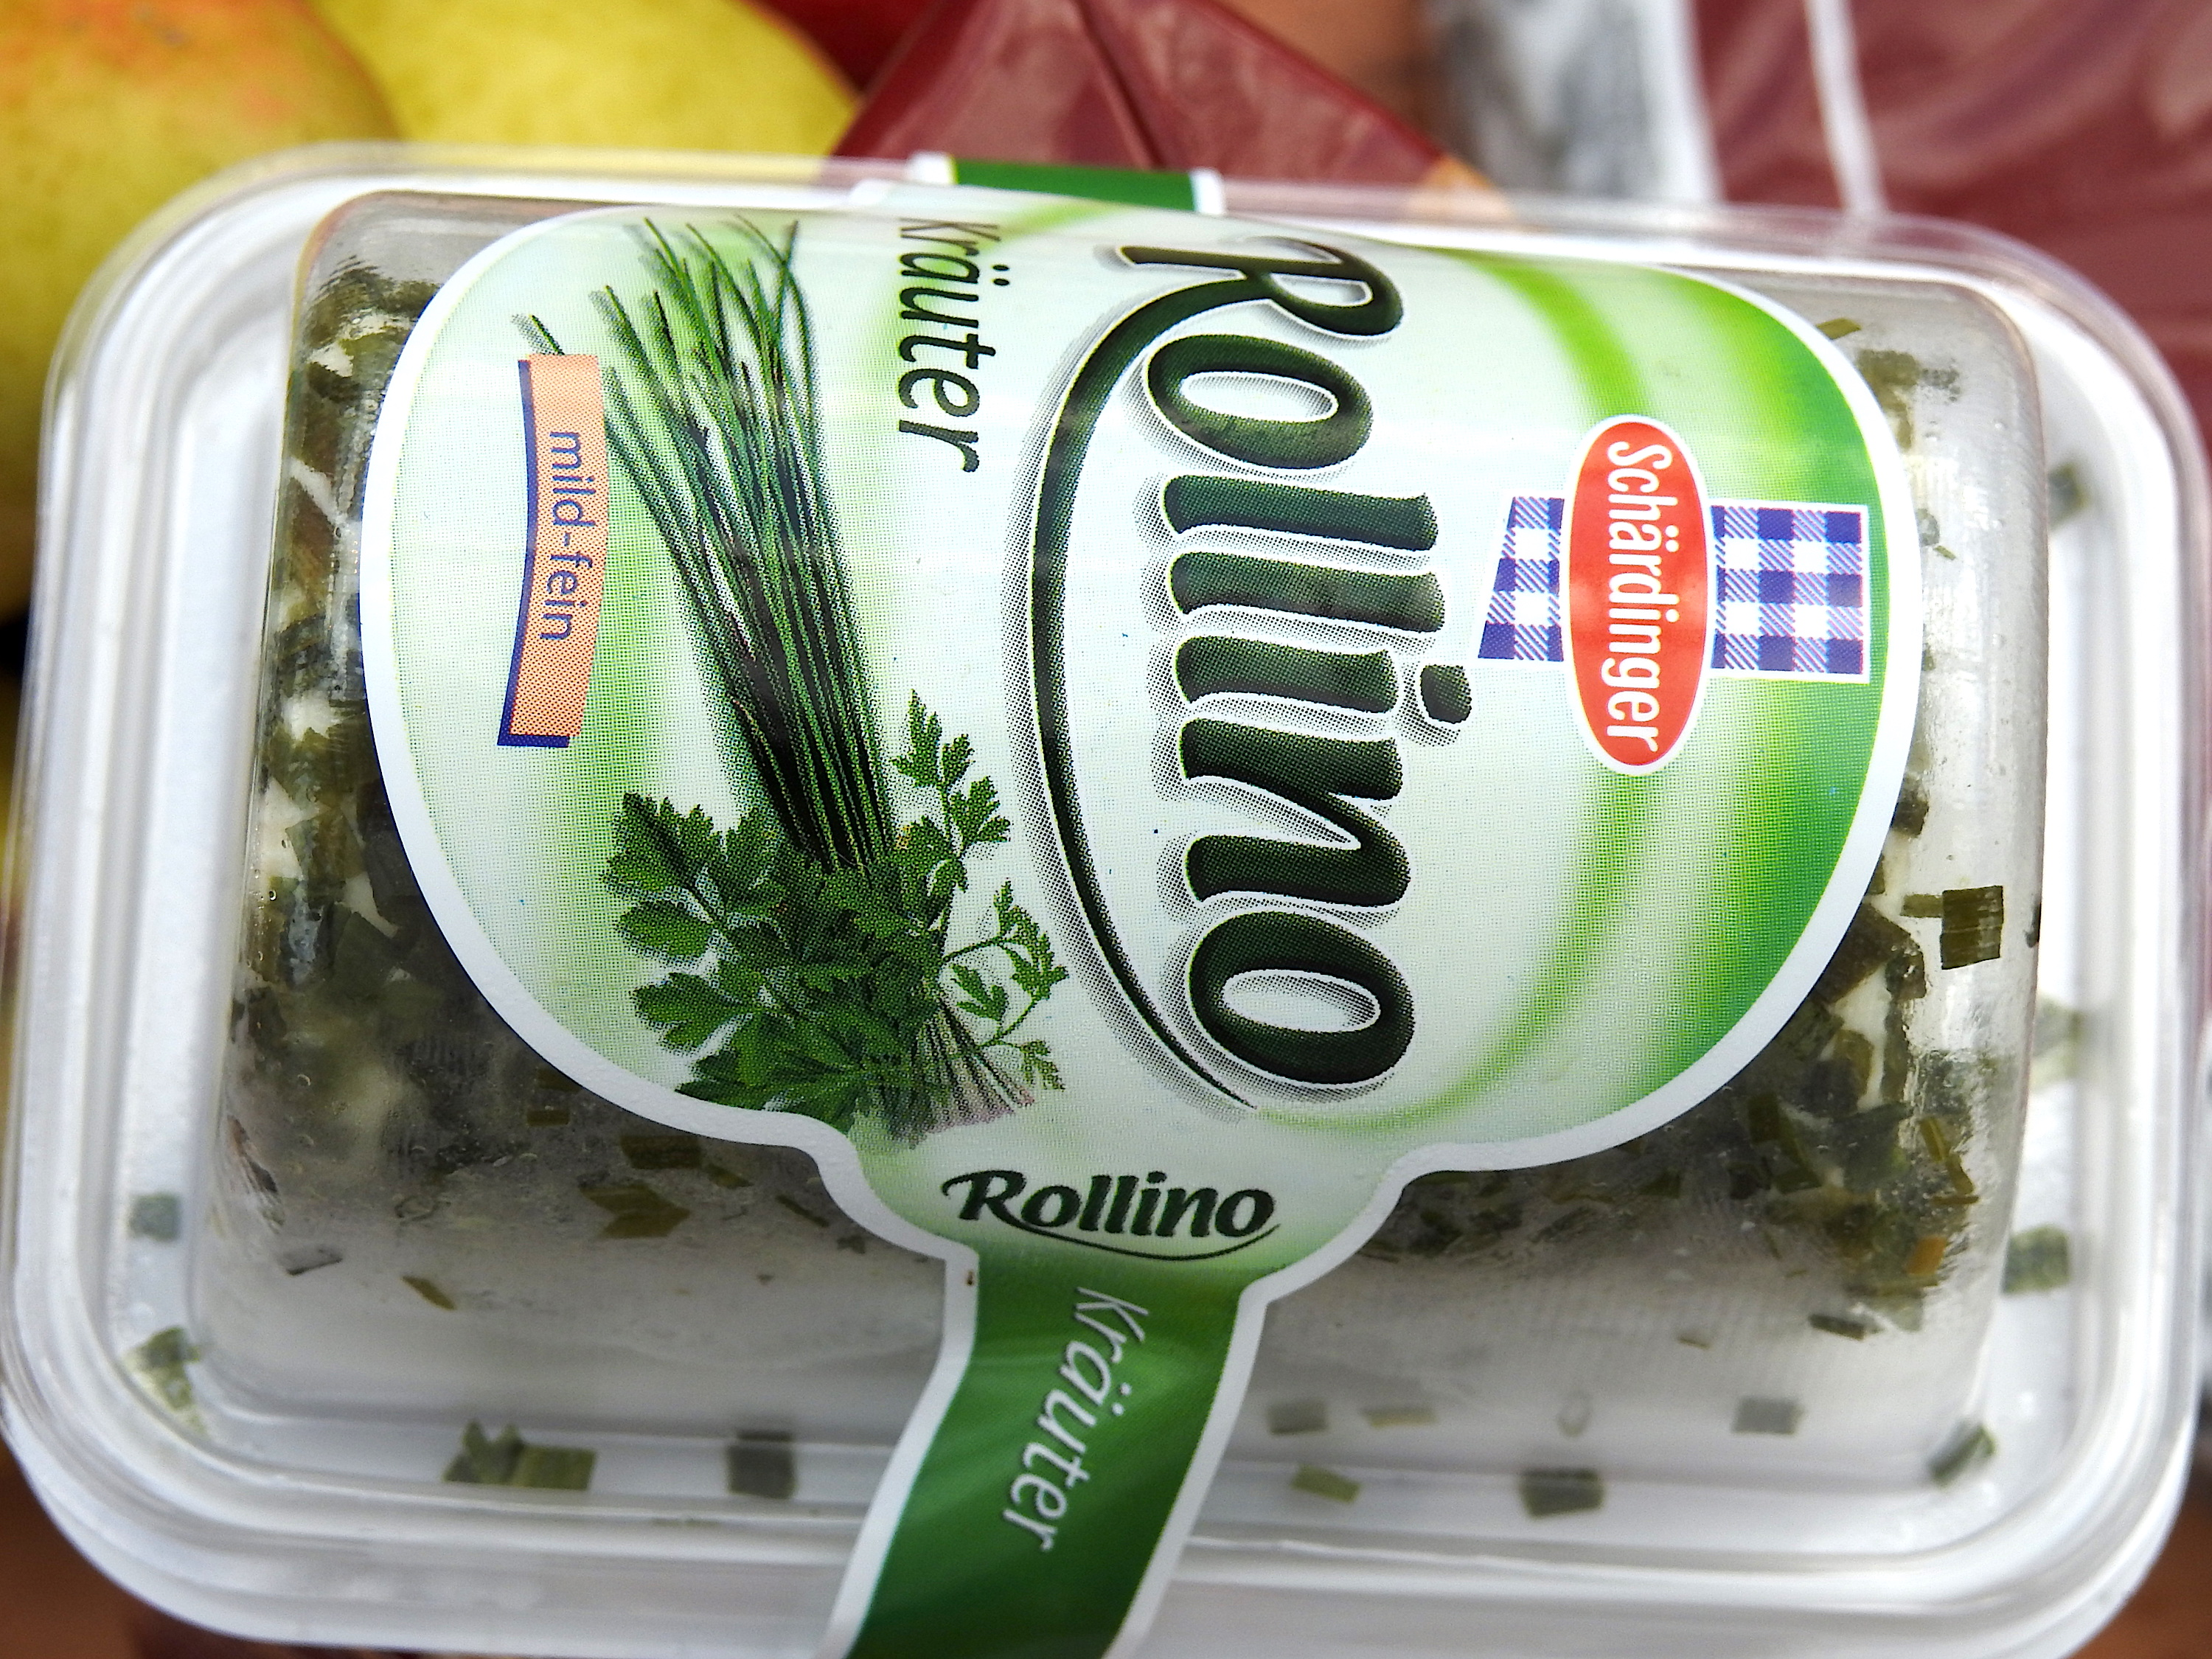 Rollino. A mild cheese similar to our Philly Cream Cheese.